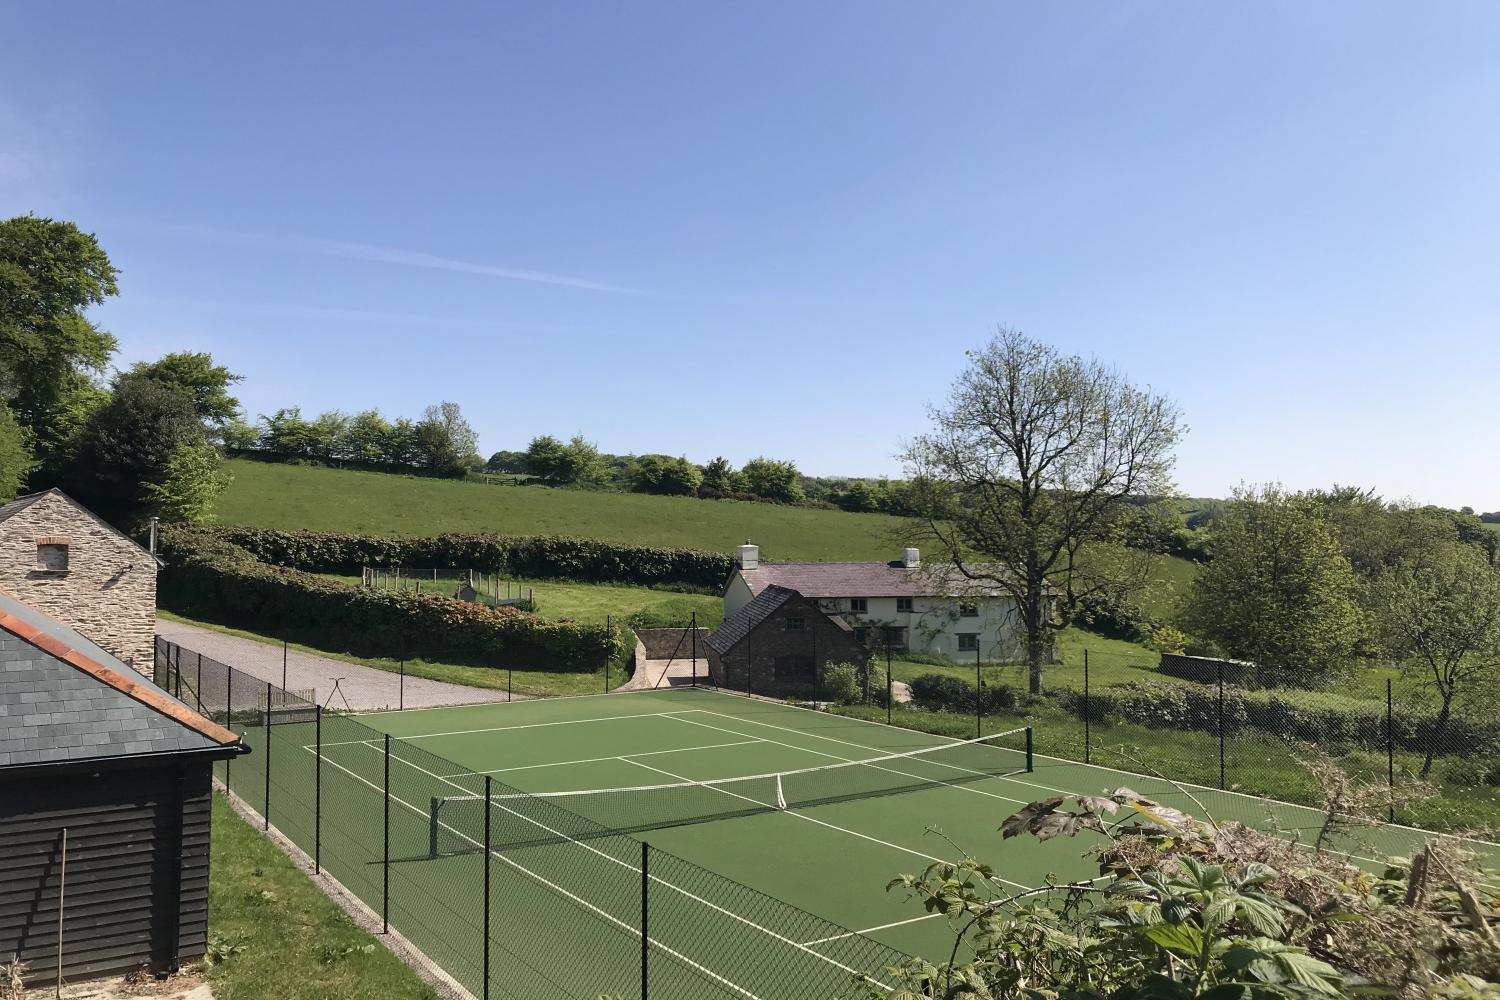 The Cowshed tennis court